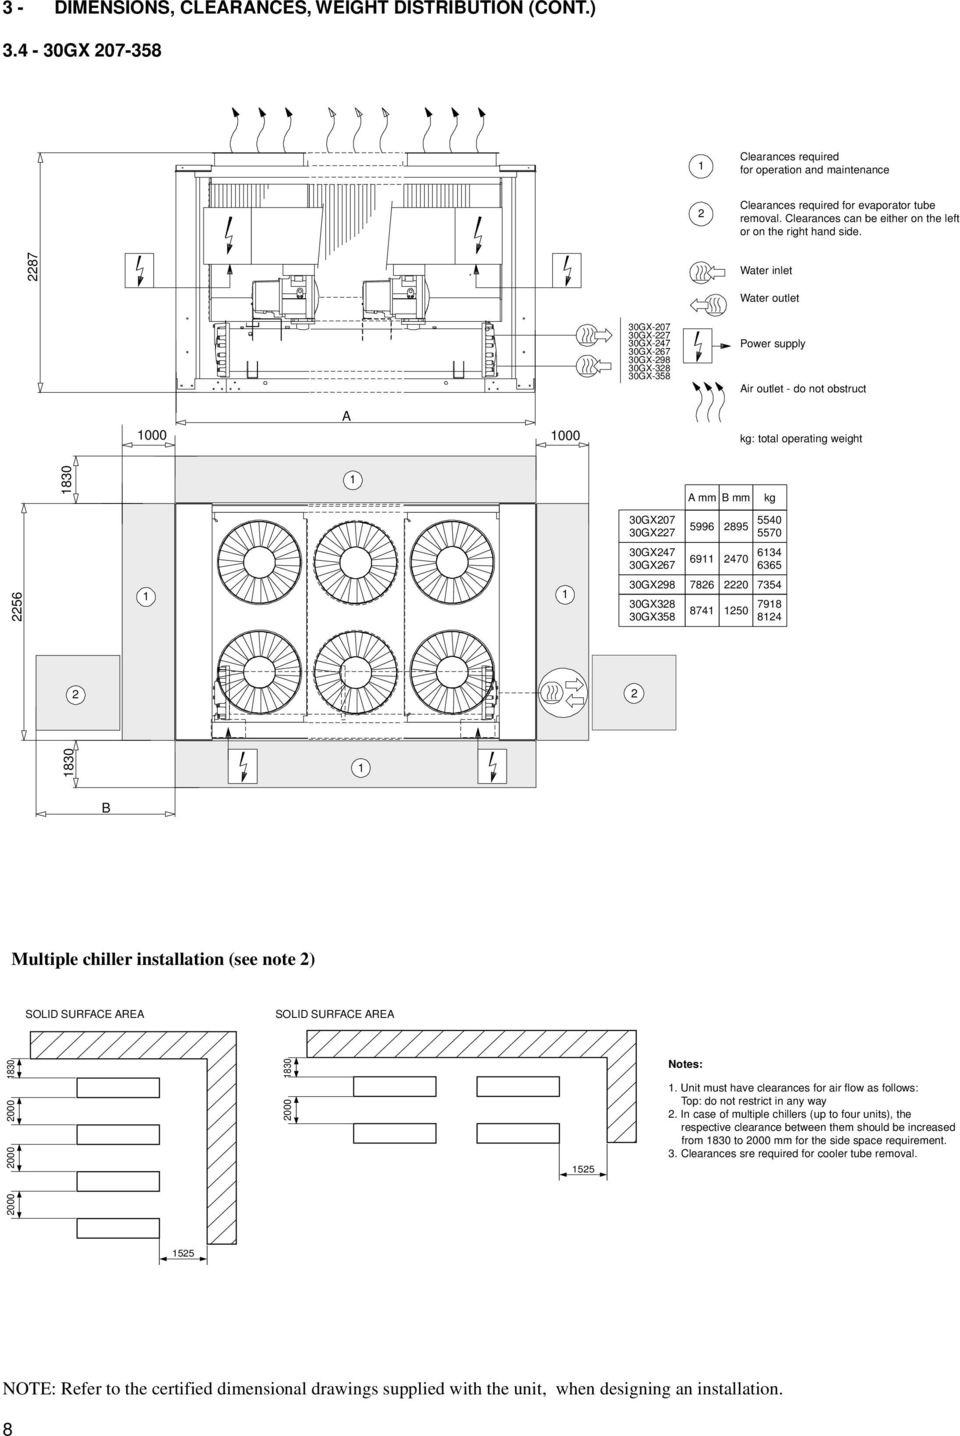 Hx Chiller 300 Wiring Diagram Diagrams Schematics Refrigeration Plants 30hxc Gx Screw Compressor Water Cooled Liquid Chillers And Air Inlet Outlet 30gx 207 227 247 267